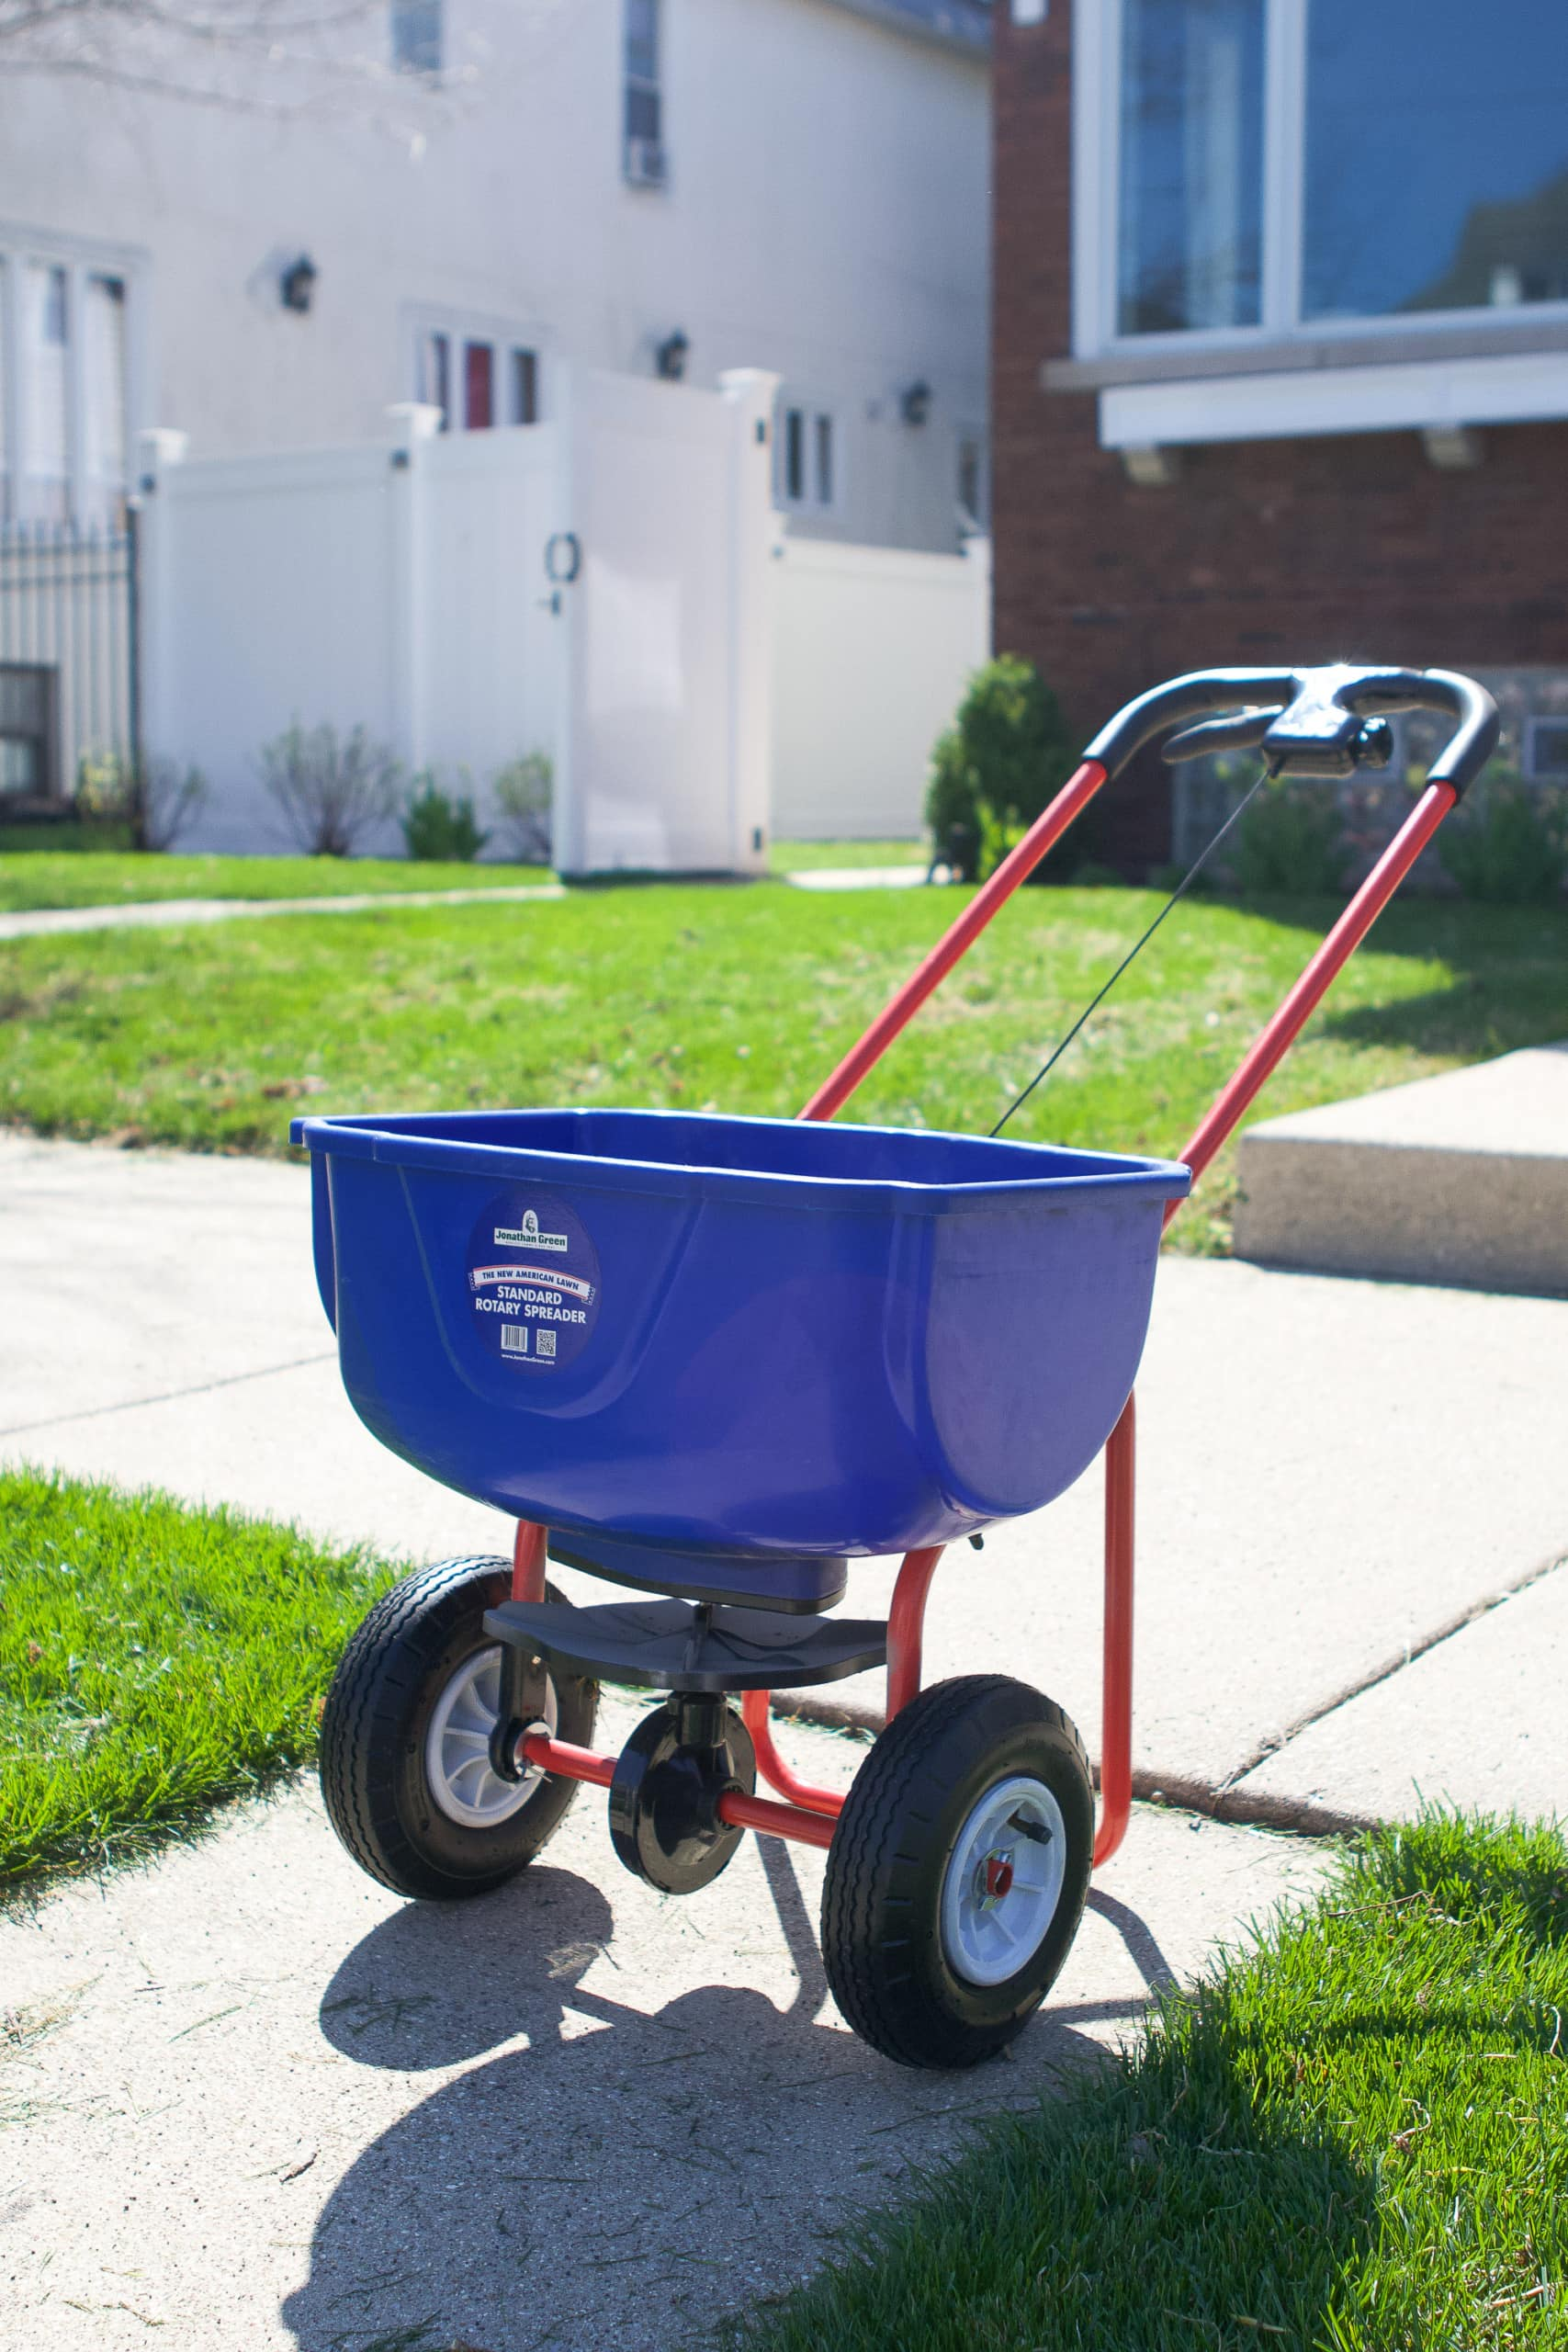 Using a spreader to prep your lawn for spring